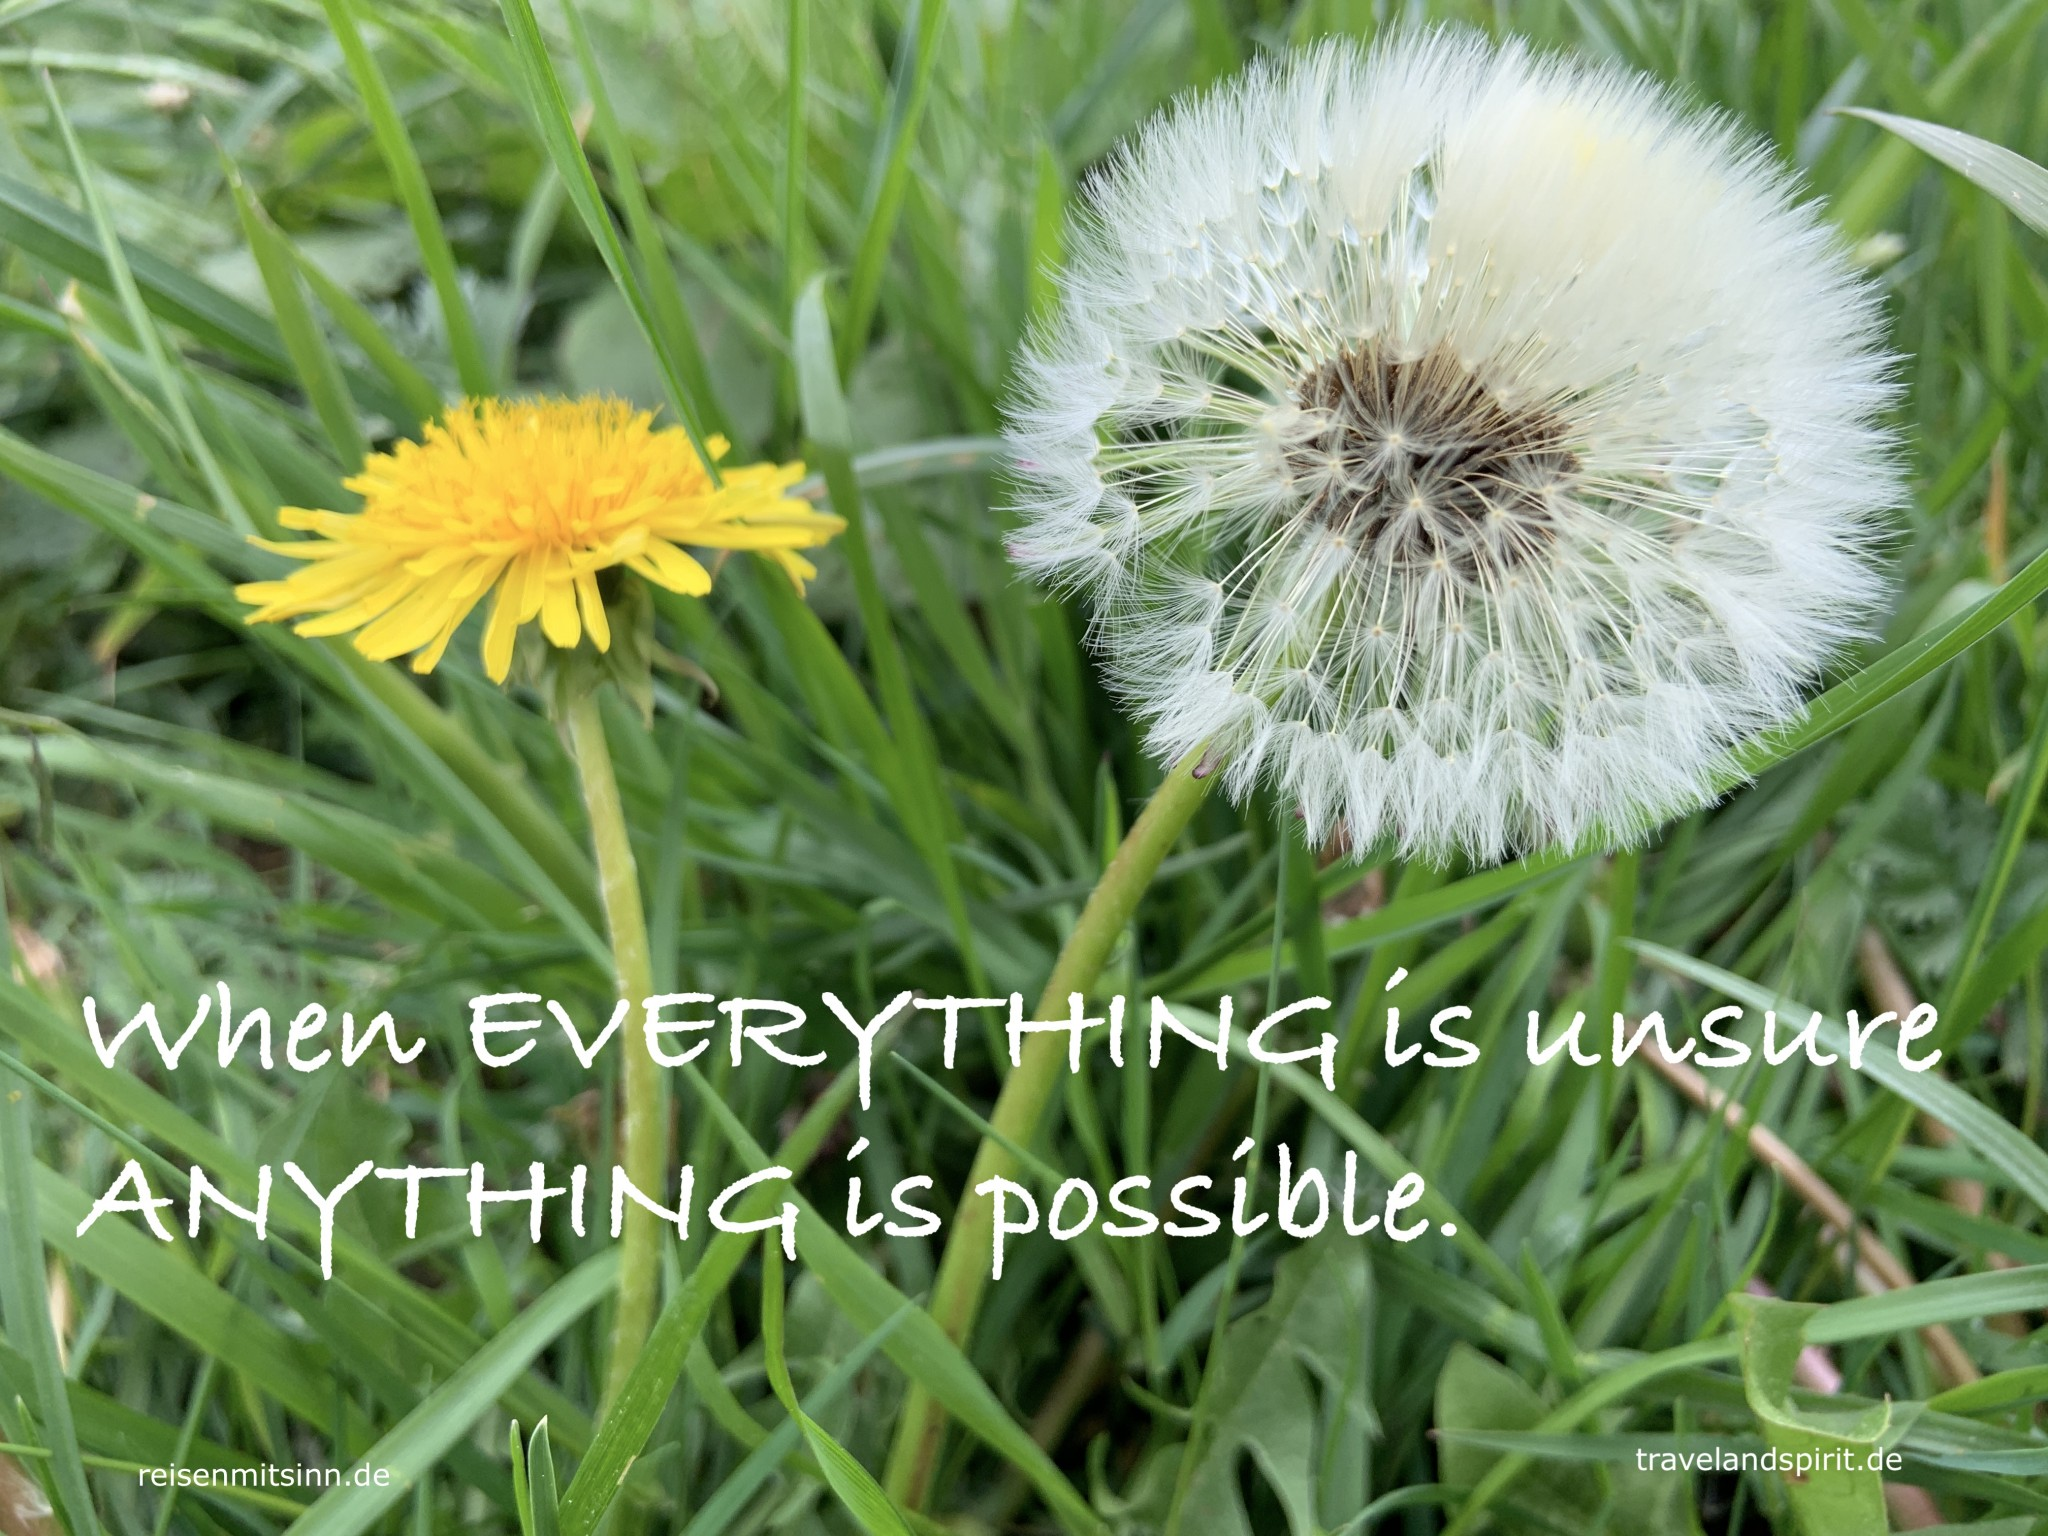 Pusteblume mit Sinnspruch-when everything is unsure, everything is possible